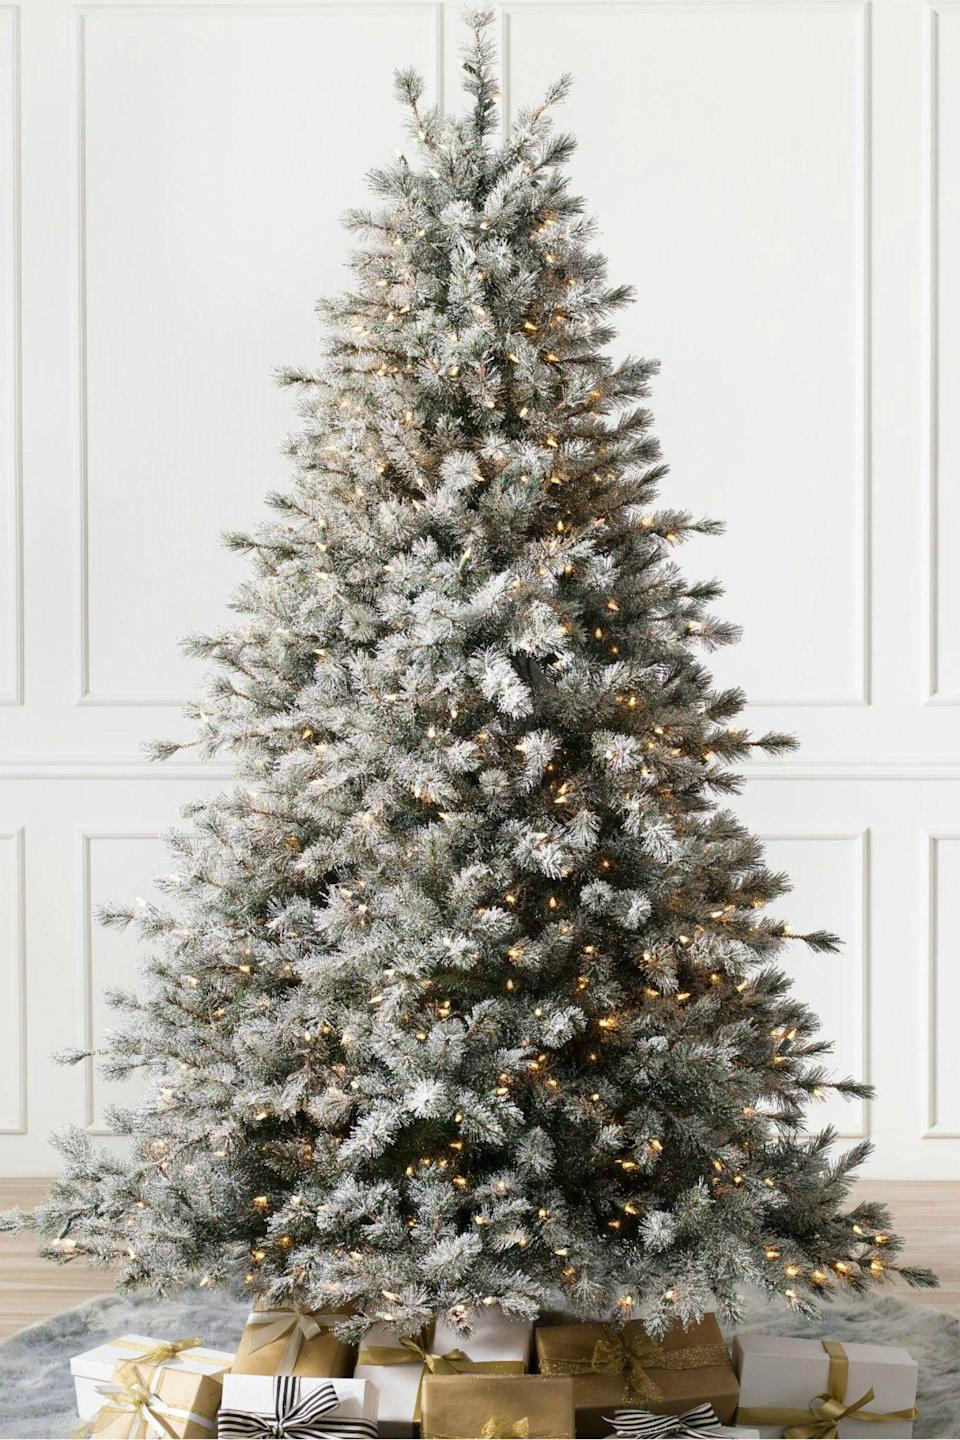 """<p><strong>Write a Review</strong></p><p>balsamhill.com</p><p><strong>$649.00</strong></p><p><a href=""""https://www.balsamhill.com/p/frosted-sugar-pine-artificial-christmas-tree"""" rel=""""nofollow noopener"""" target=""""_blank"""" data-ylk=""""slk:Shop Now"""" class=""""link rapid-noclick-resp"""">Shop Now</a></p><p>Transform your living room into a winter wonderland with an artificial Christmas tree boasting faux snow-covered branches.</p>"""